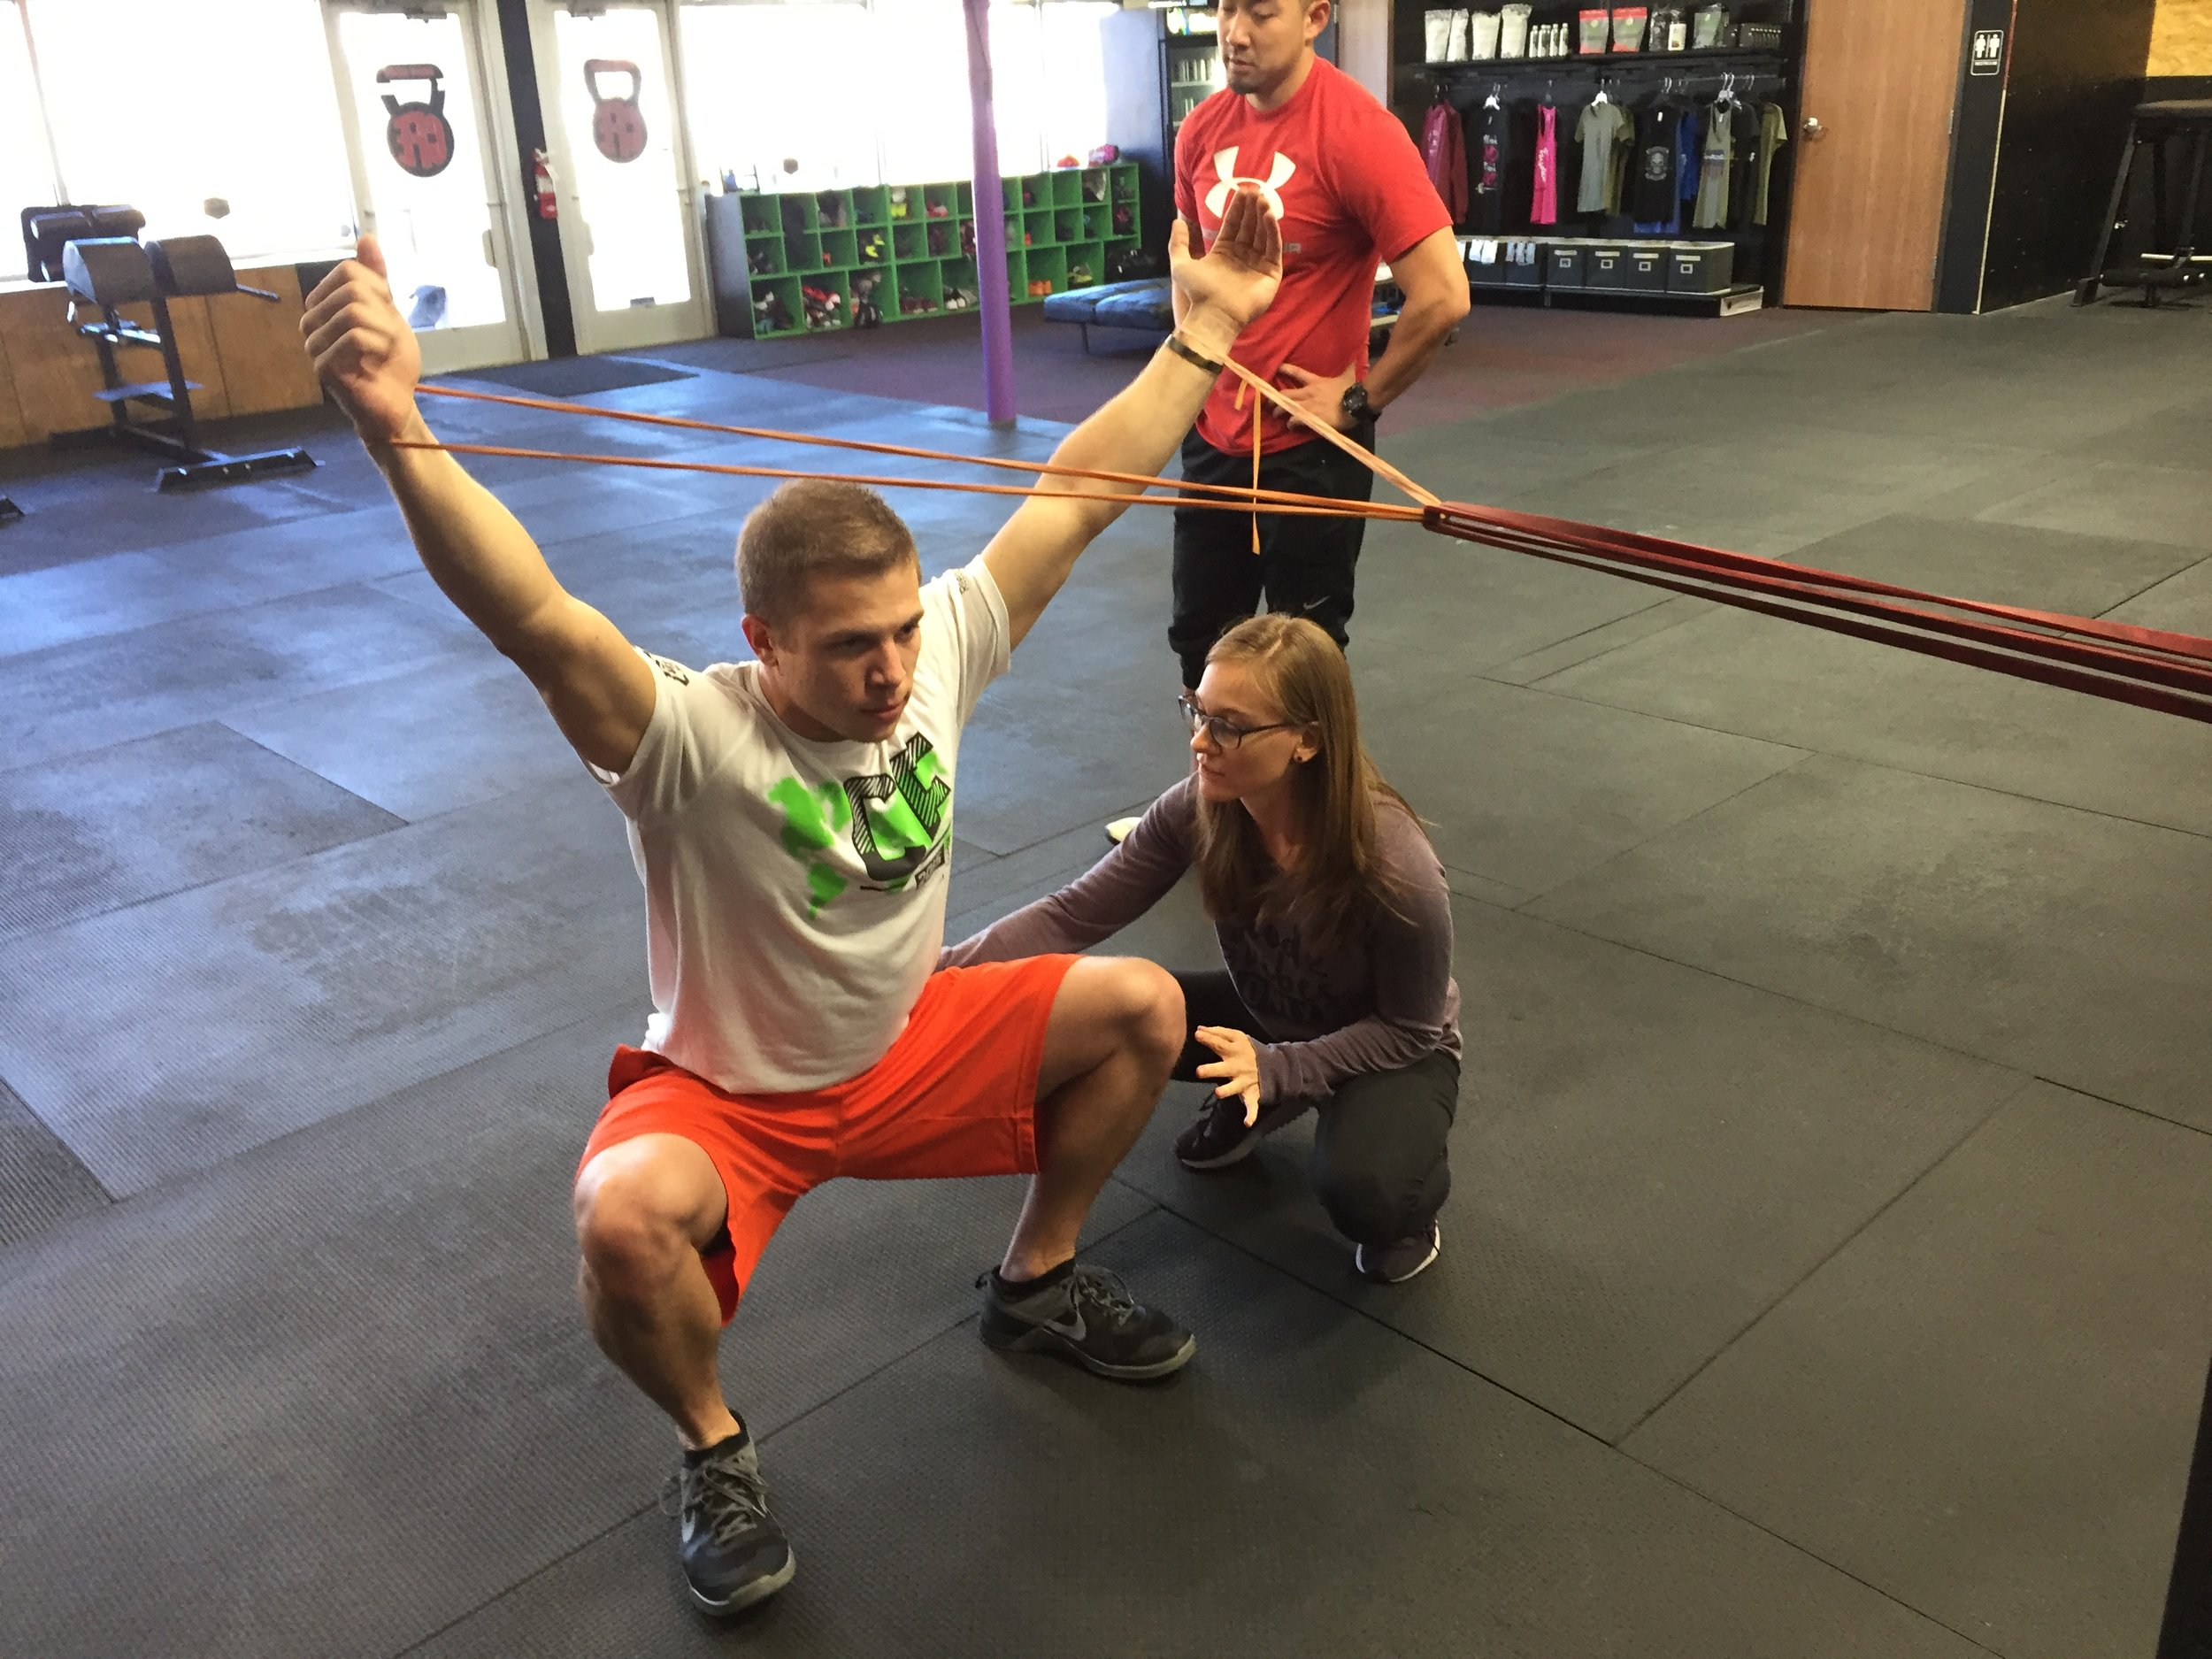 Teaching squat re-patterning cues to optimize position and activation. Here focused on getting diaphragm stacked over pelvic floor to maximize neuromotor control.